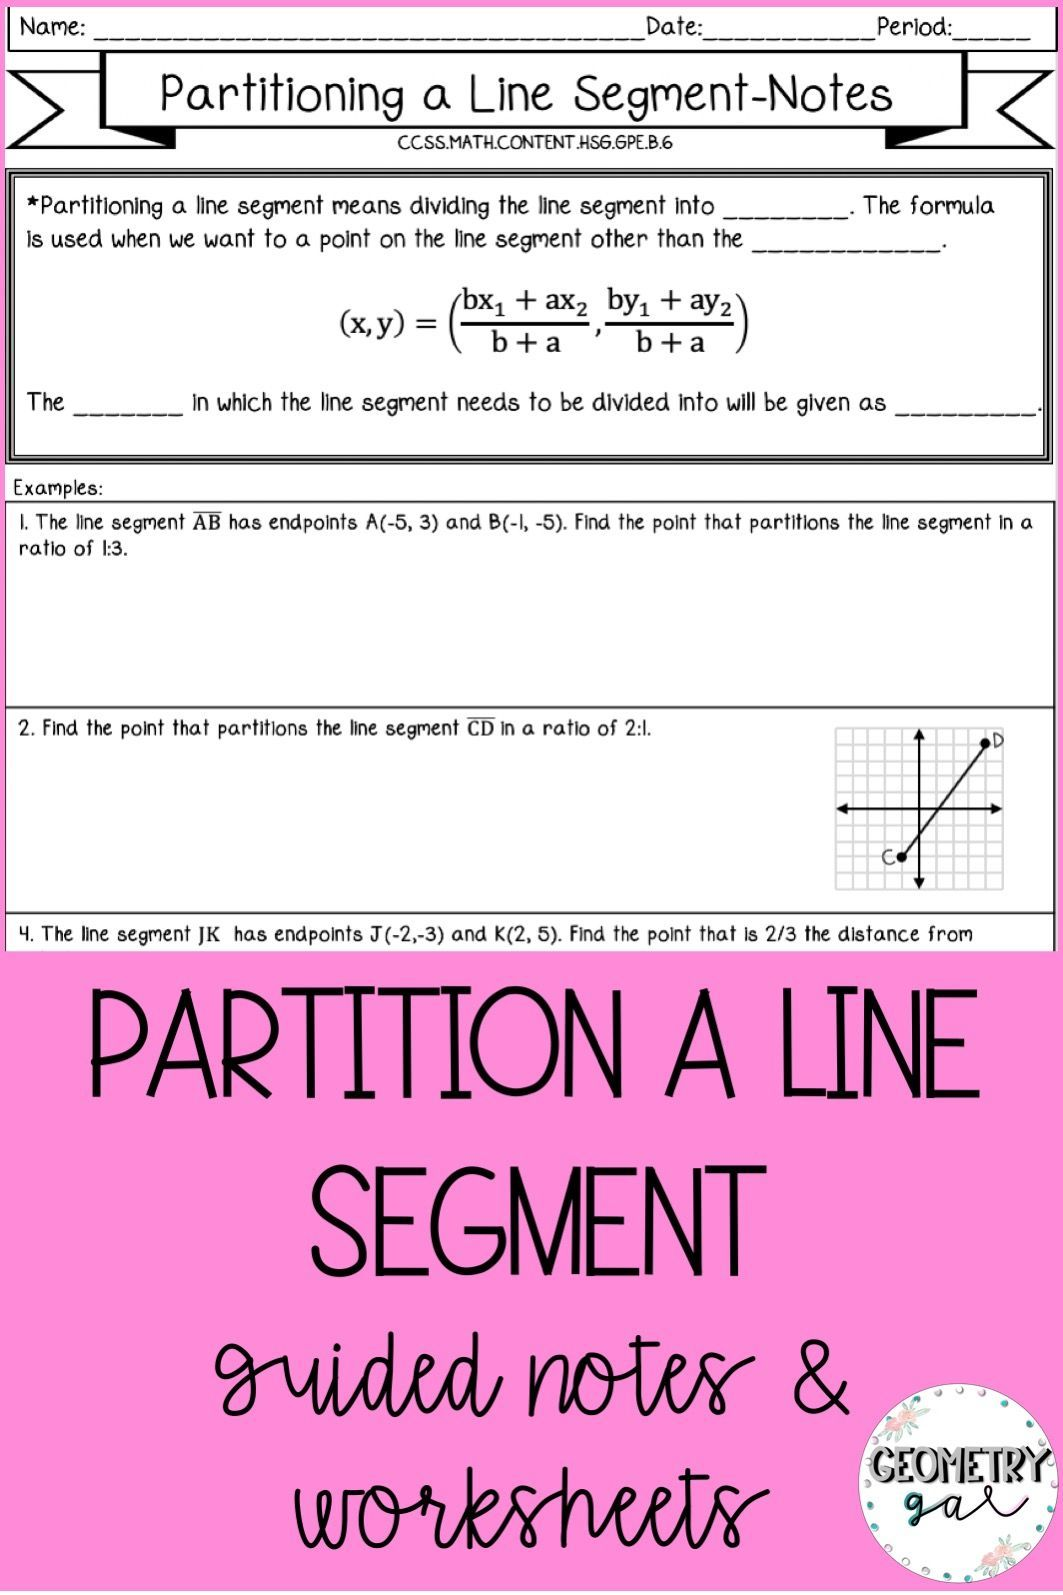 Partition A Line Segment Guided Notes Worksheets